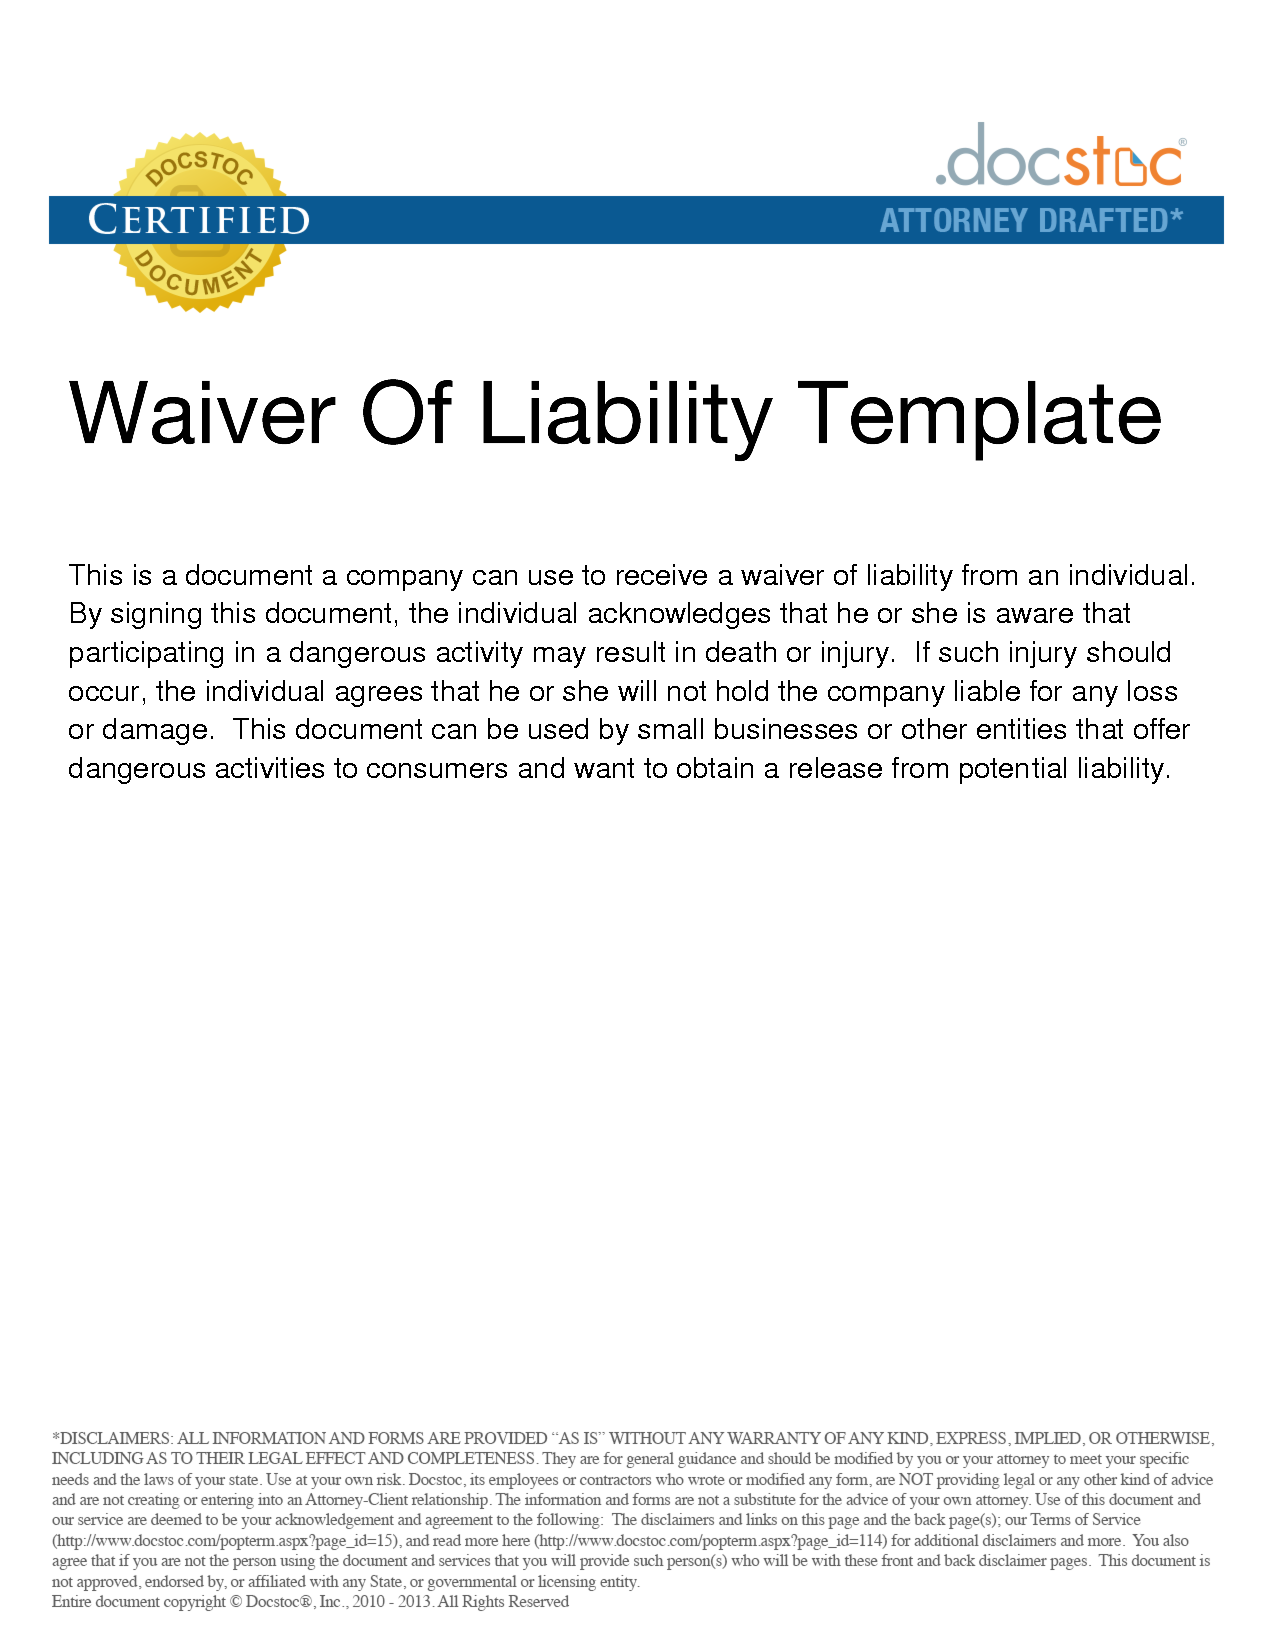 Waiver-Of-Liability-Sample-007 Sale Agreement Letter Template on retail sample contract, spanish for, microsoft word, motor vehicle, free printable purchase, service line,